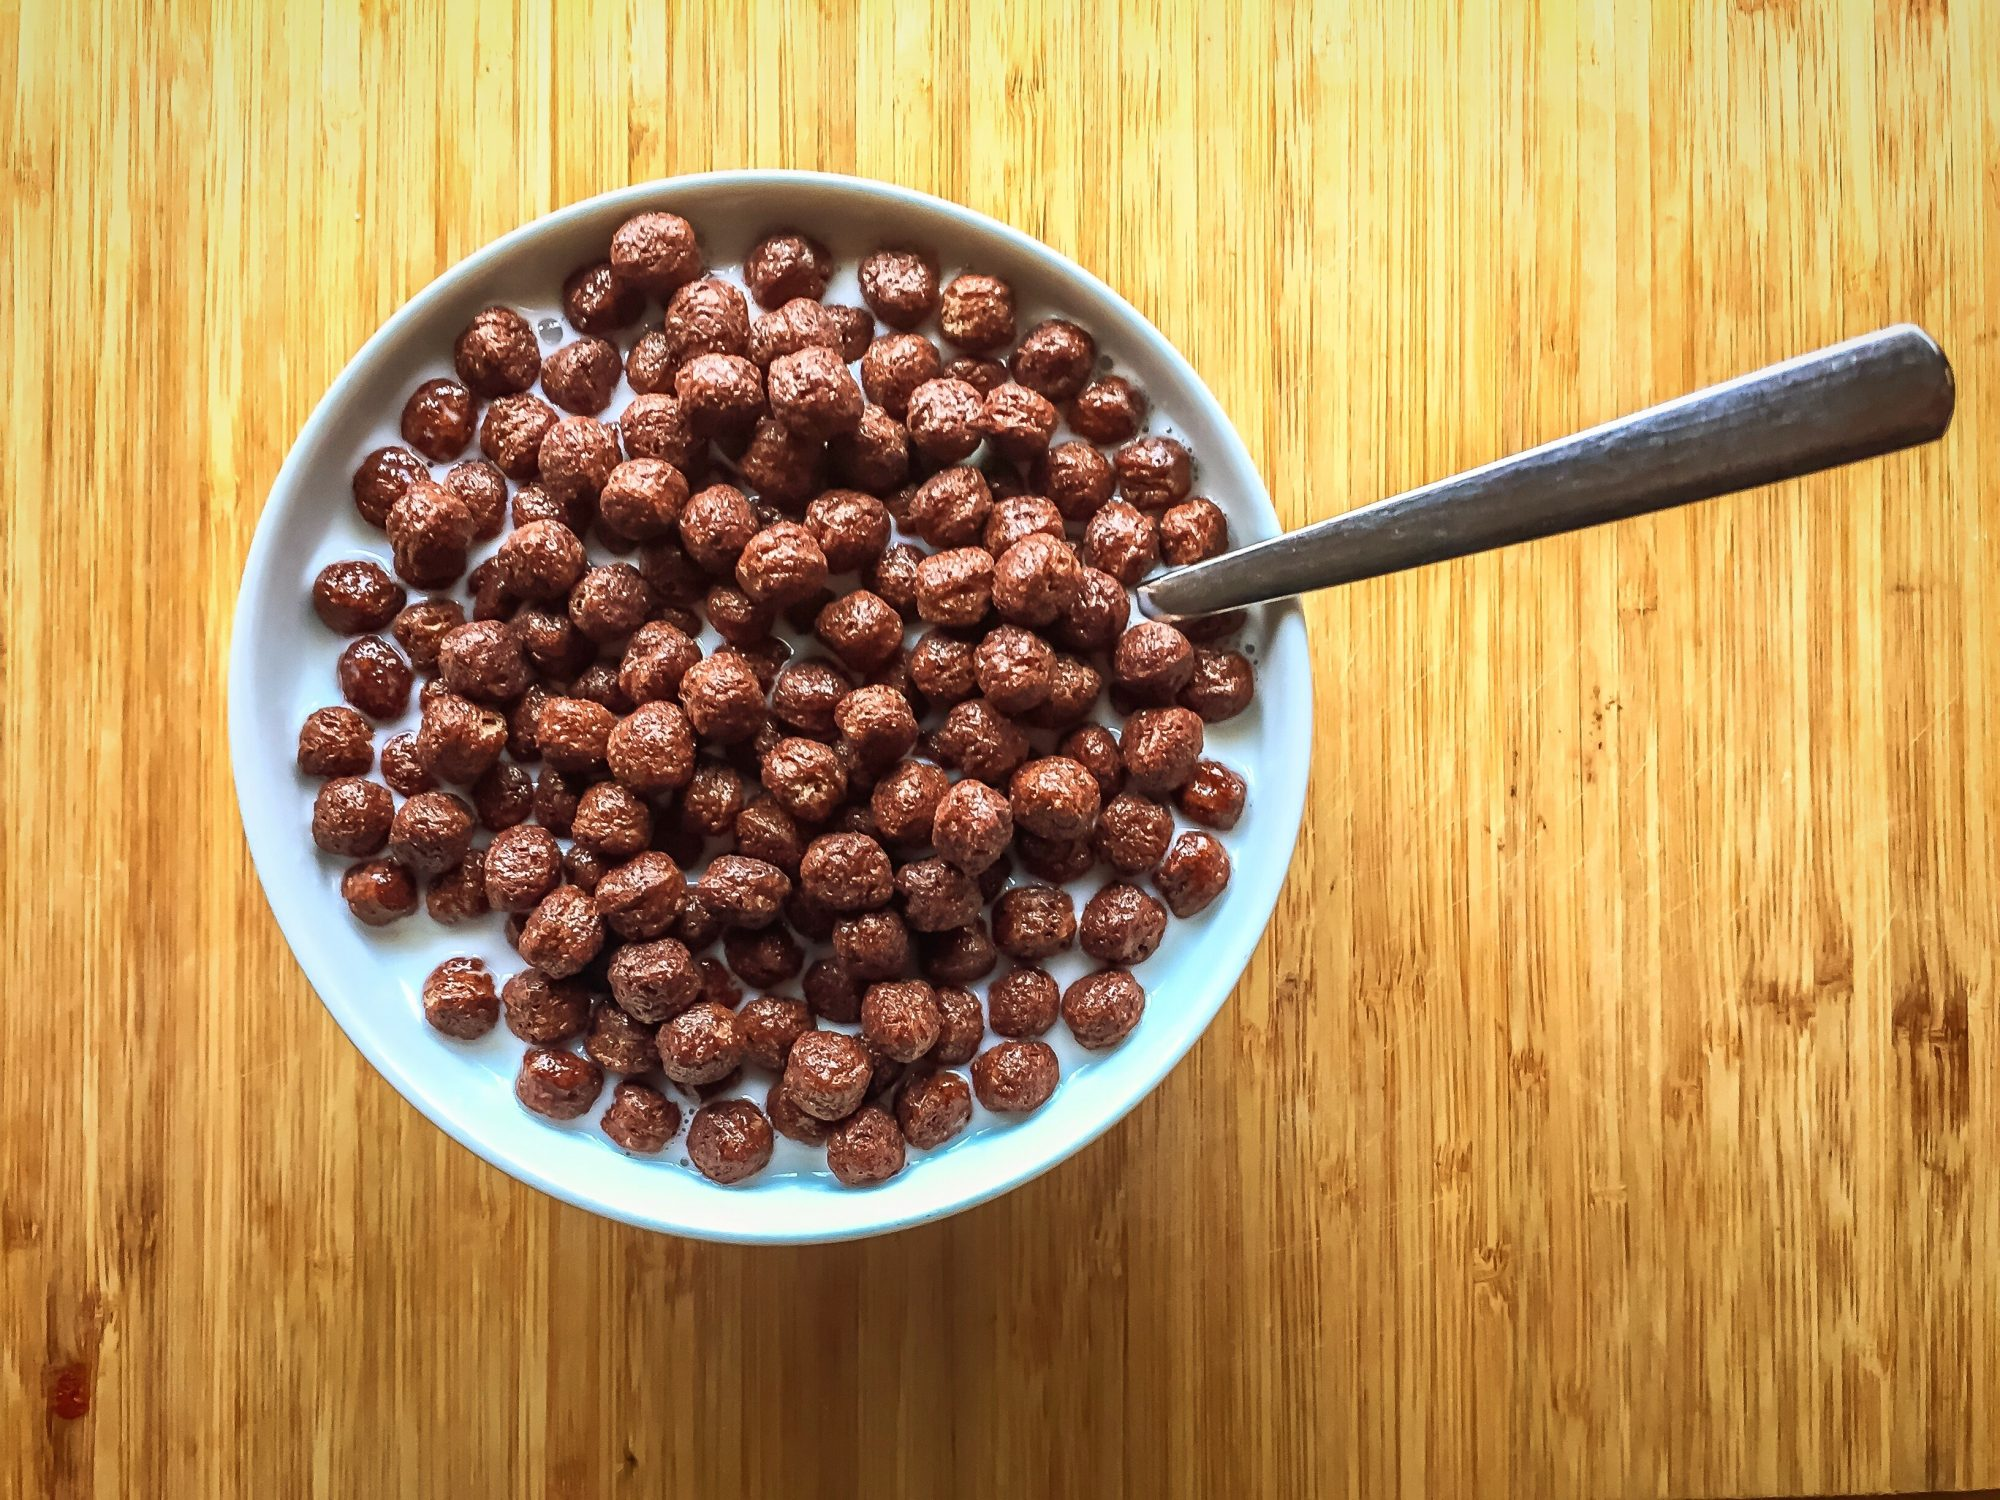 Cap'n Crunch Is Making Chocolate Cereal for Valentine's Day